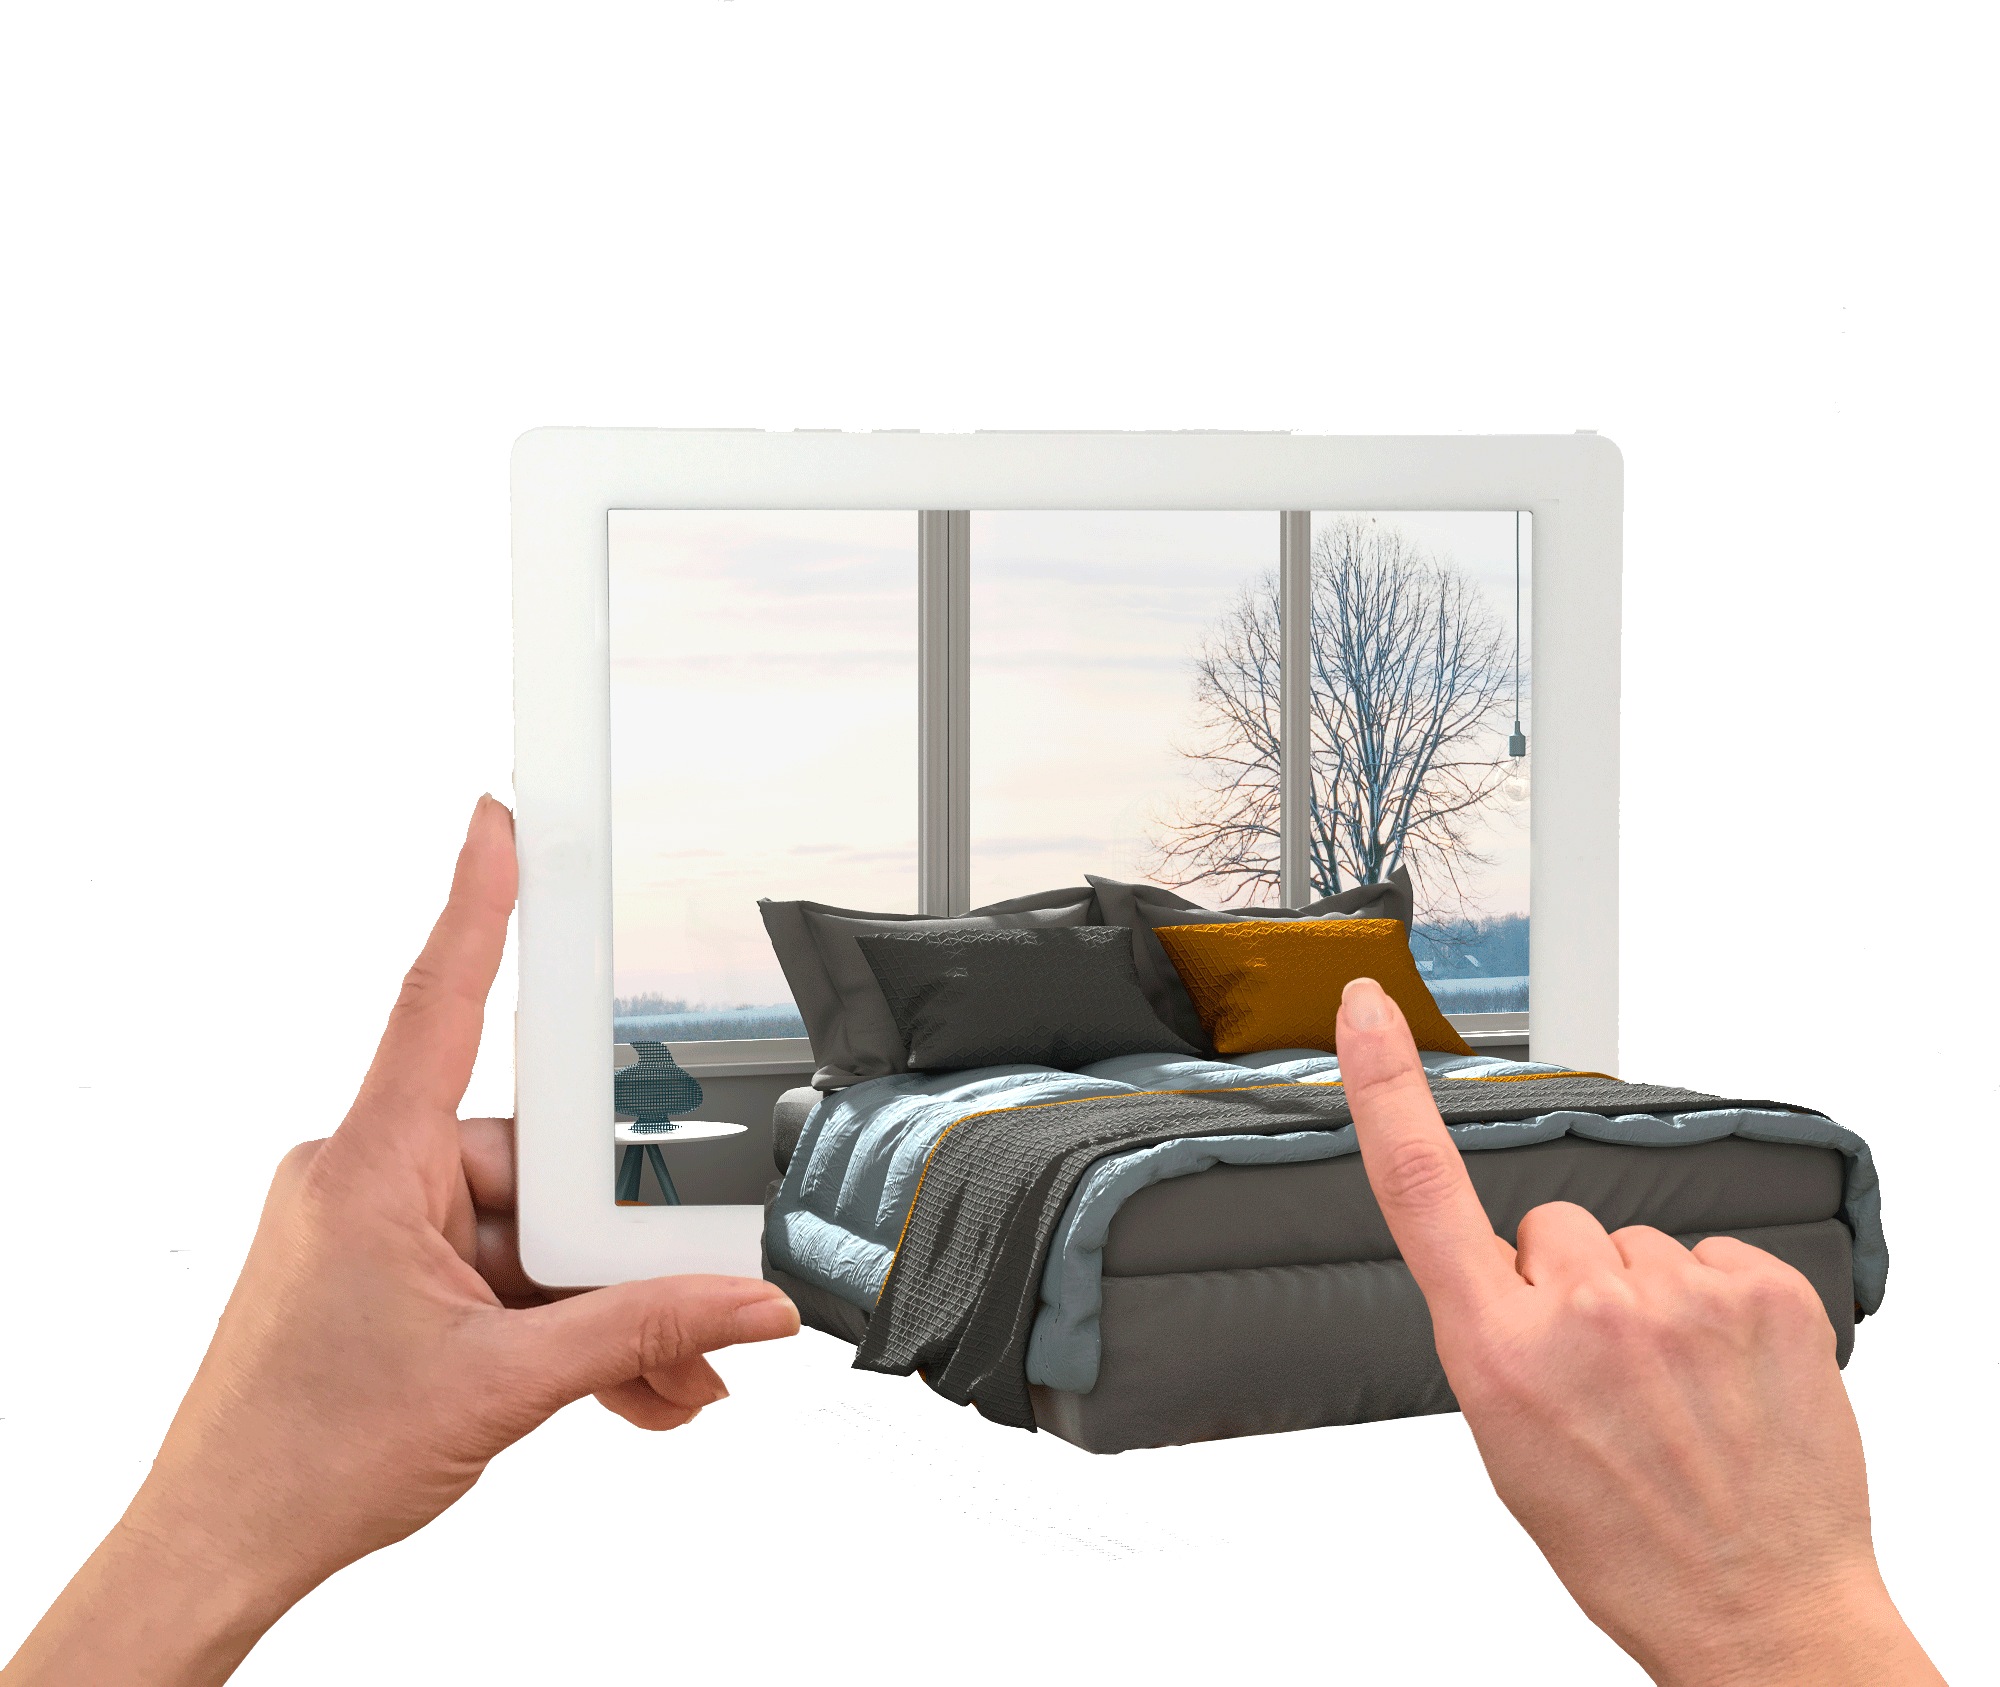 A person holding a tablet with a bed being projected out of it, representing augmented reality